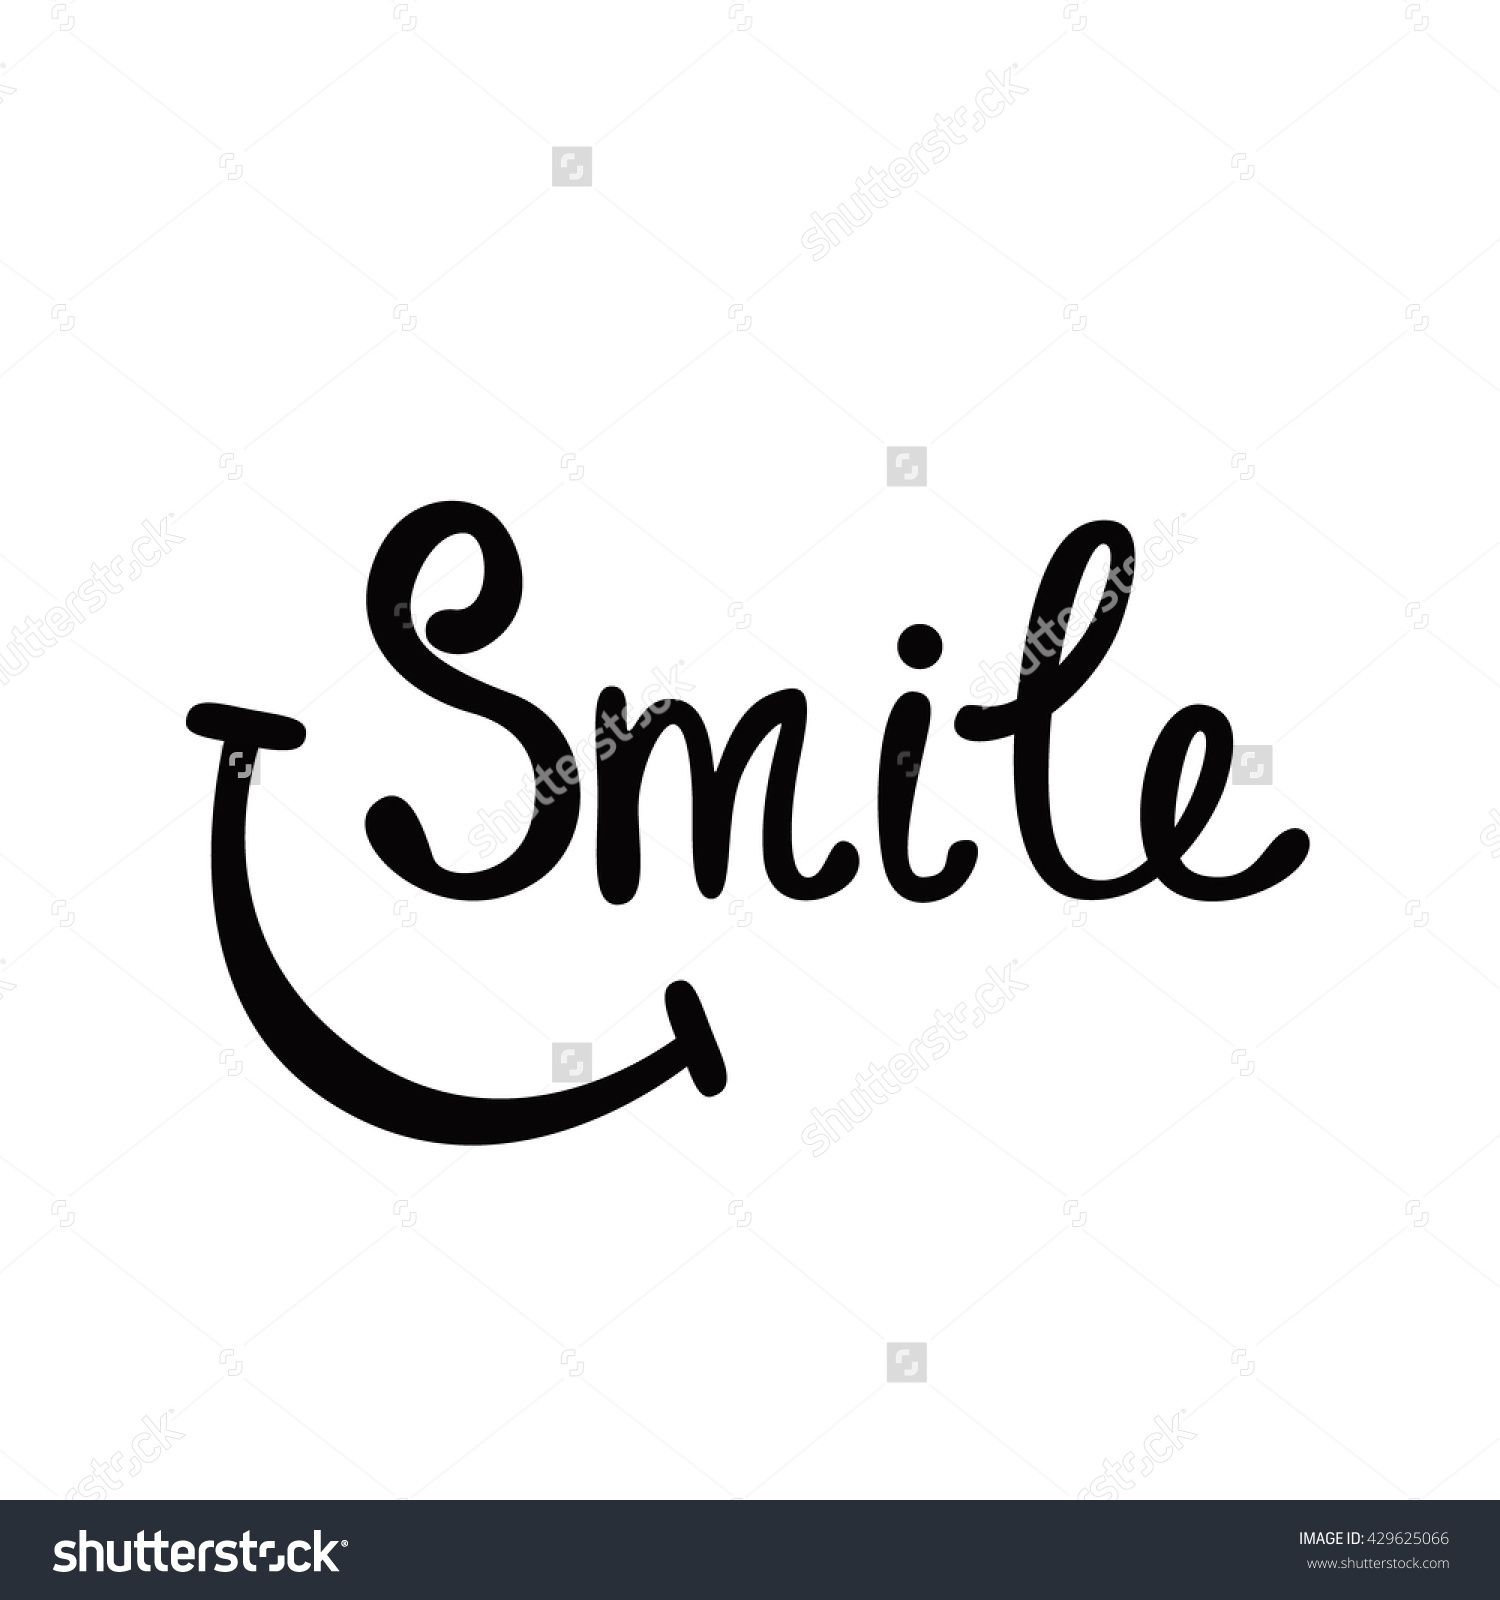 C Stock Quote: Smile. Inspirational Quote About Happy. Modern Calligraphy